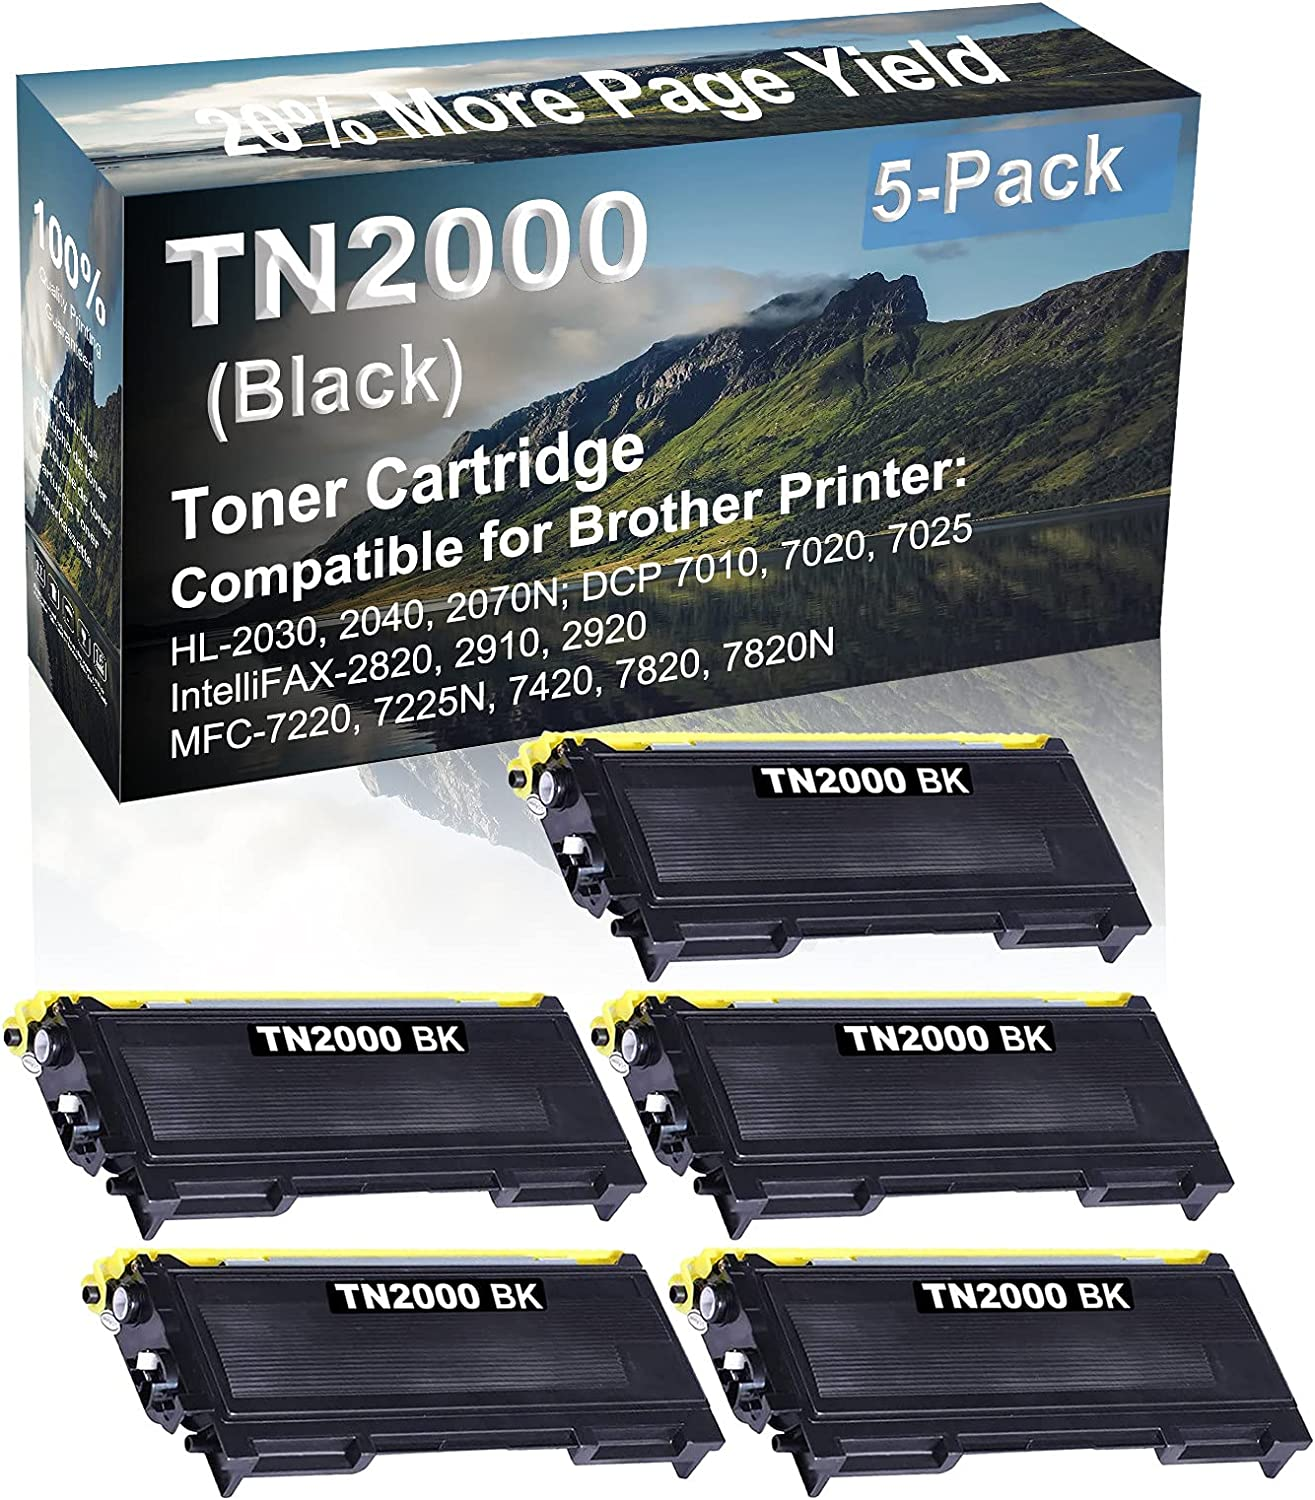 5-Pack Compatible High Capacity MFC-7220, 7225N, 7420, 7820, 7820N Printer Toner Cartridge Replacement for Brother TN2000 Printer Cartridge (Black)